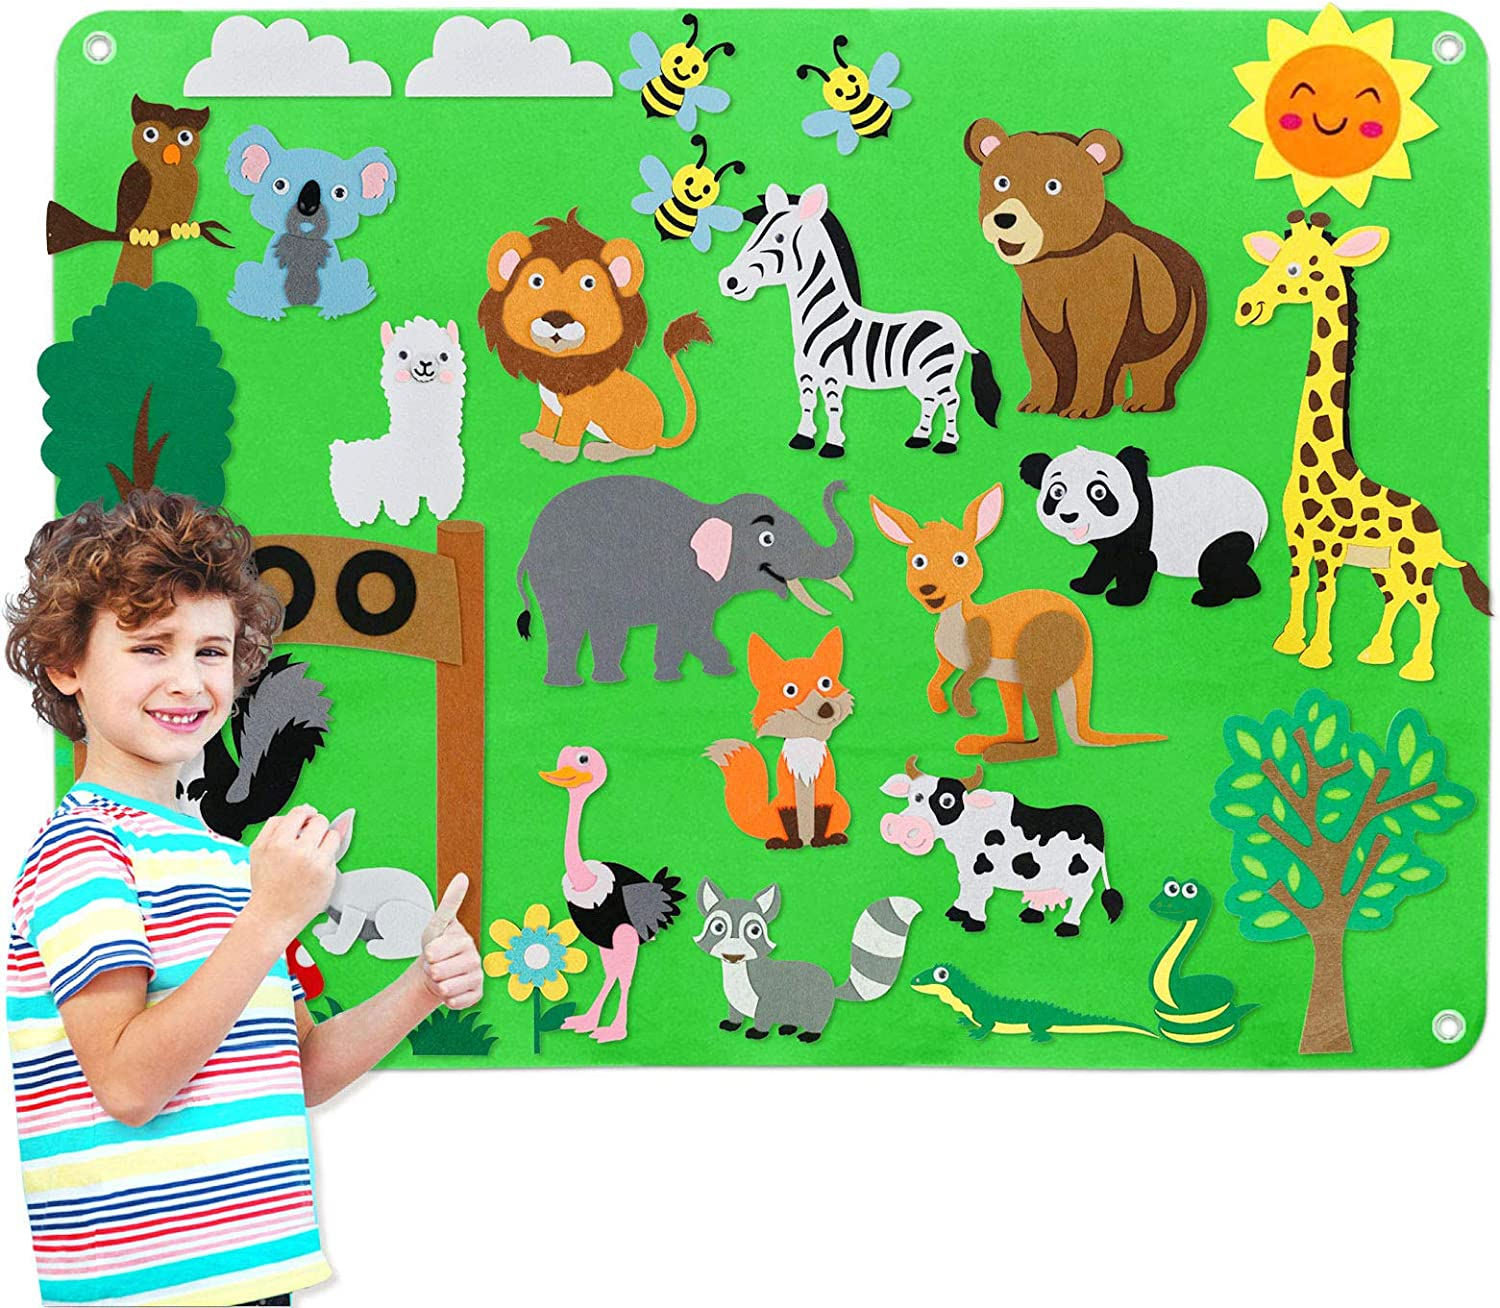 Large Wall Hang Storytelling Activity Kits Craft Toy Gifts for Kids Preschool Flannel Felt-Board Story Set for Toddlers with Felt Zoo Animals Figures